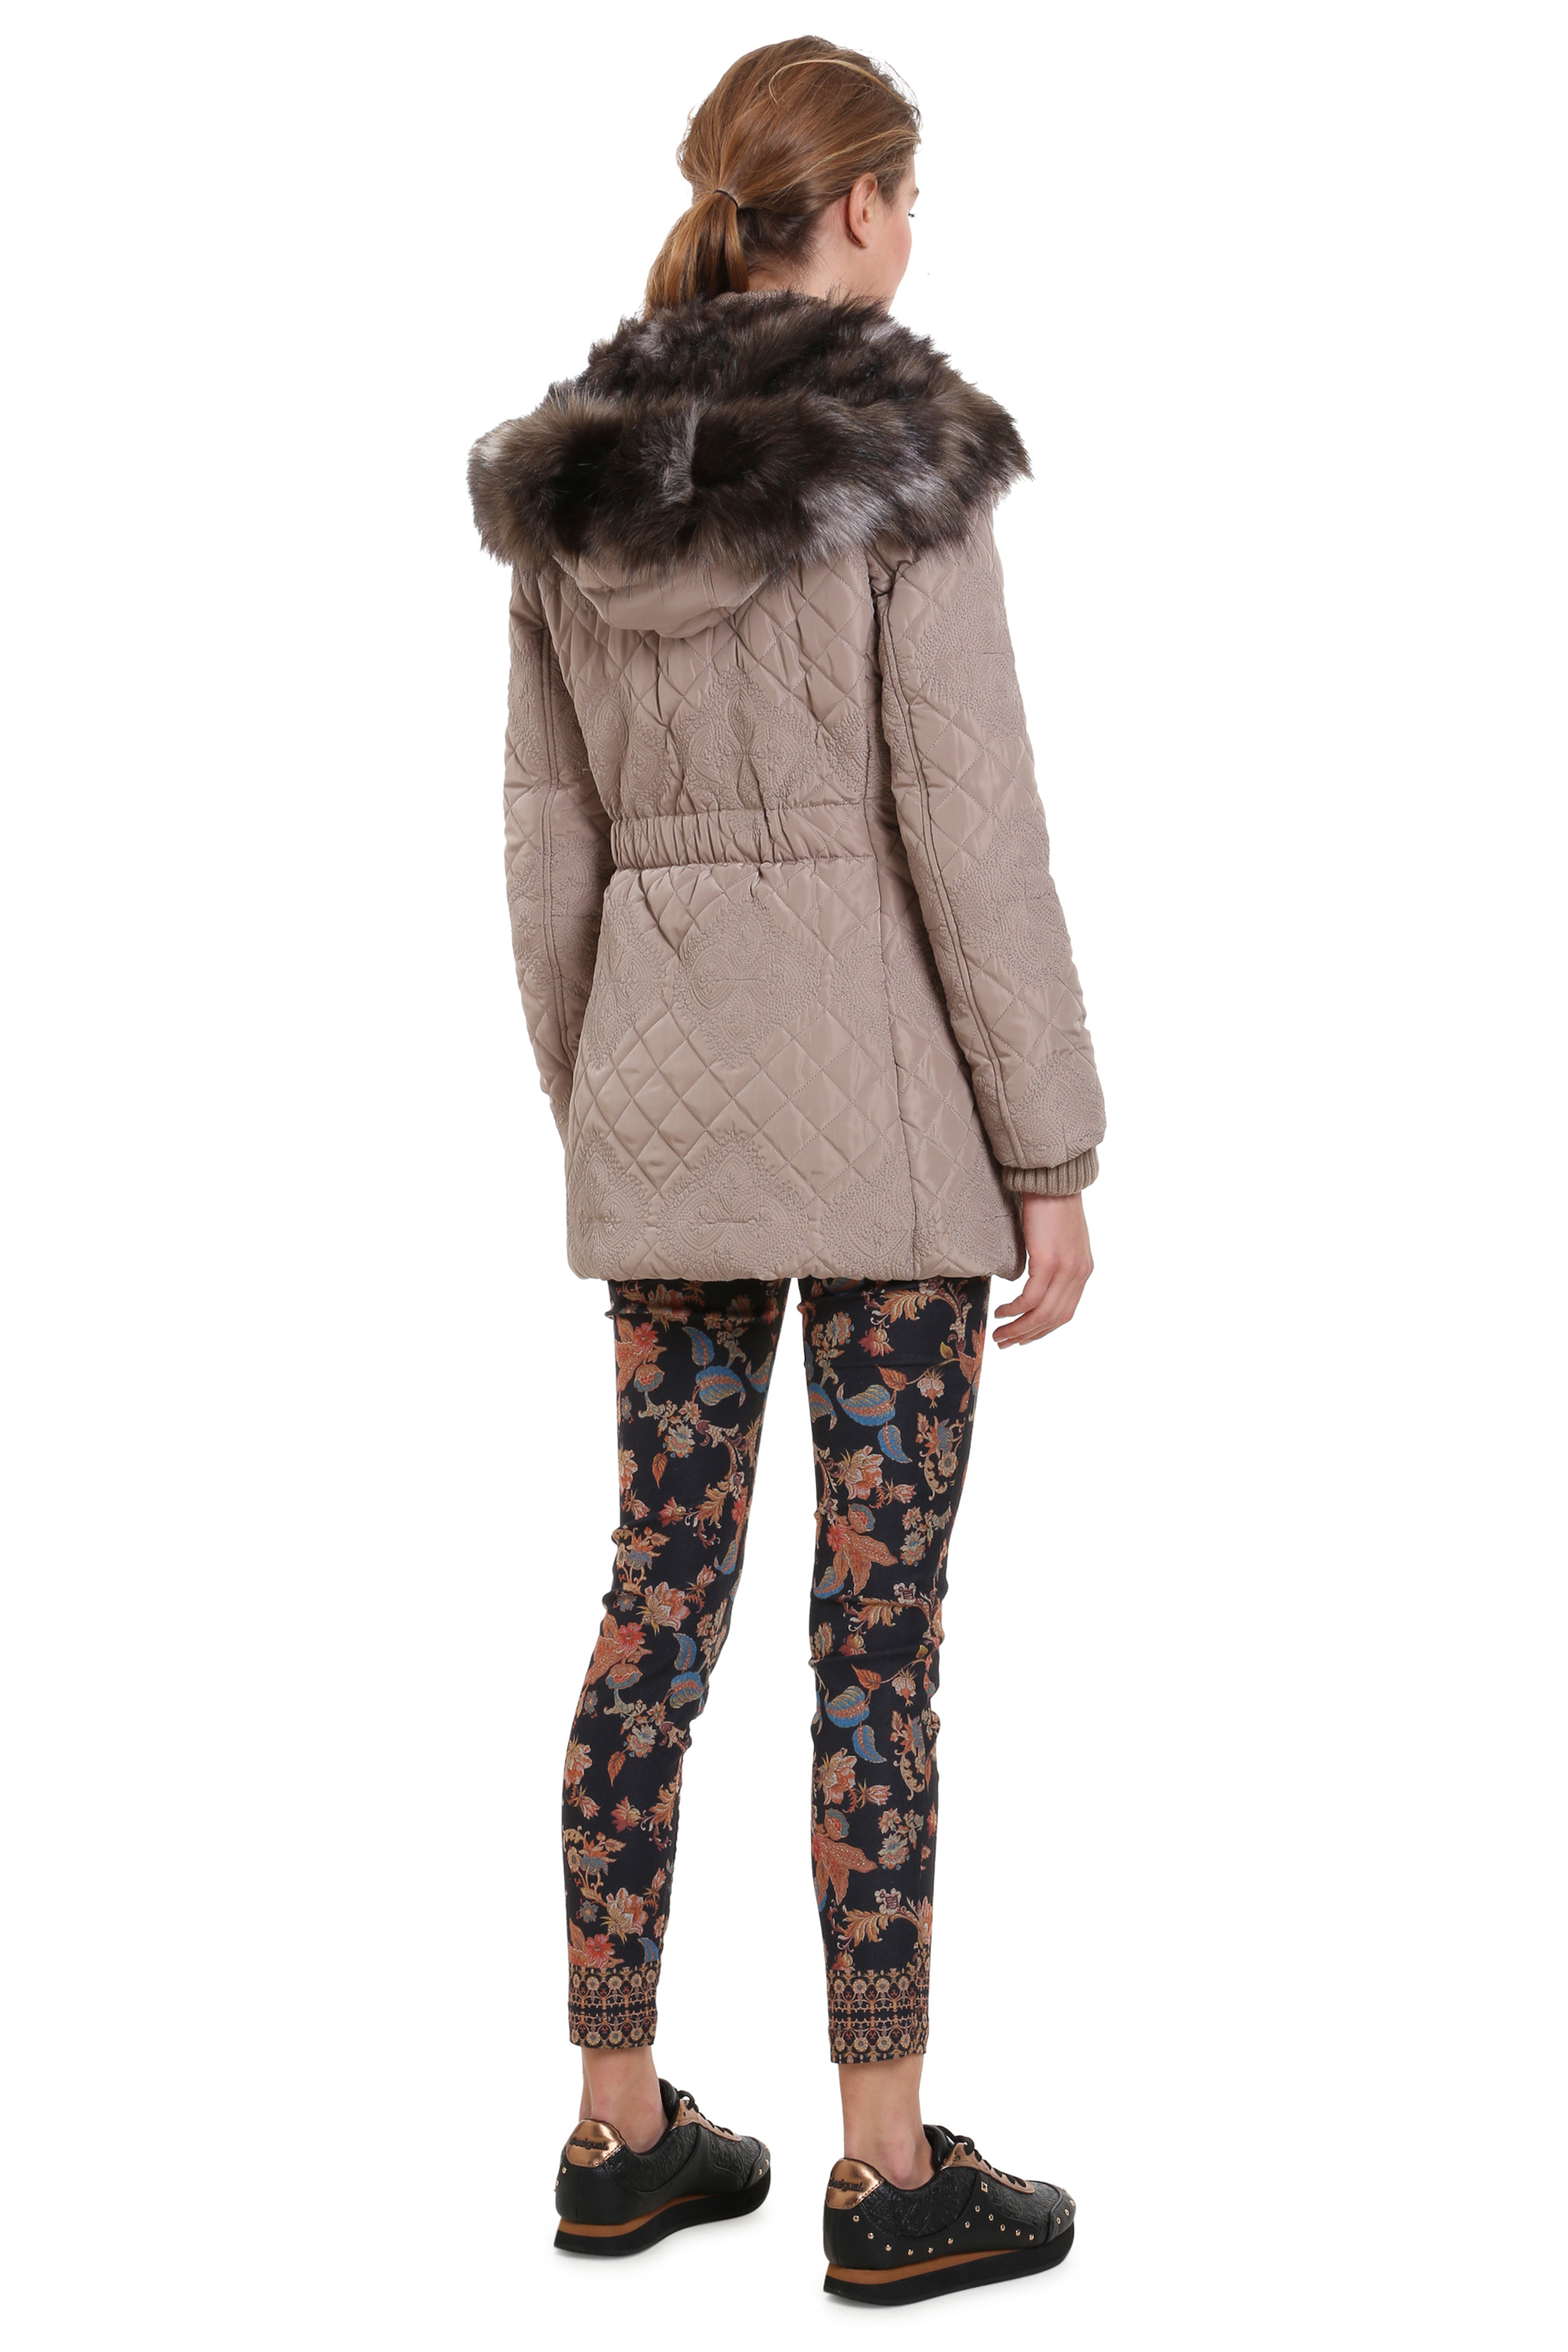 Quilted Maca Rrp£184 Coat Winter Warm 18 black Uk8 Puffa 36 Beige red Jacket Padded 46 Desigual 4xTUwtq1T